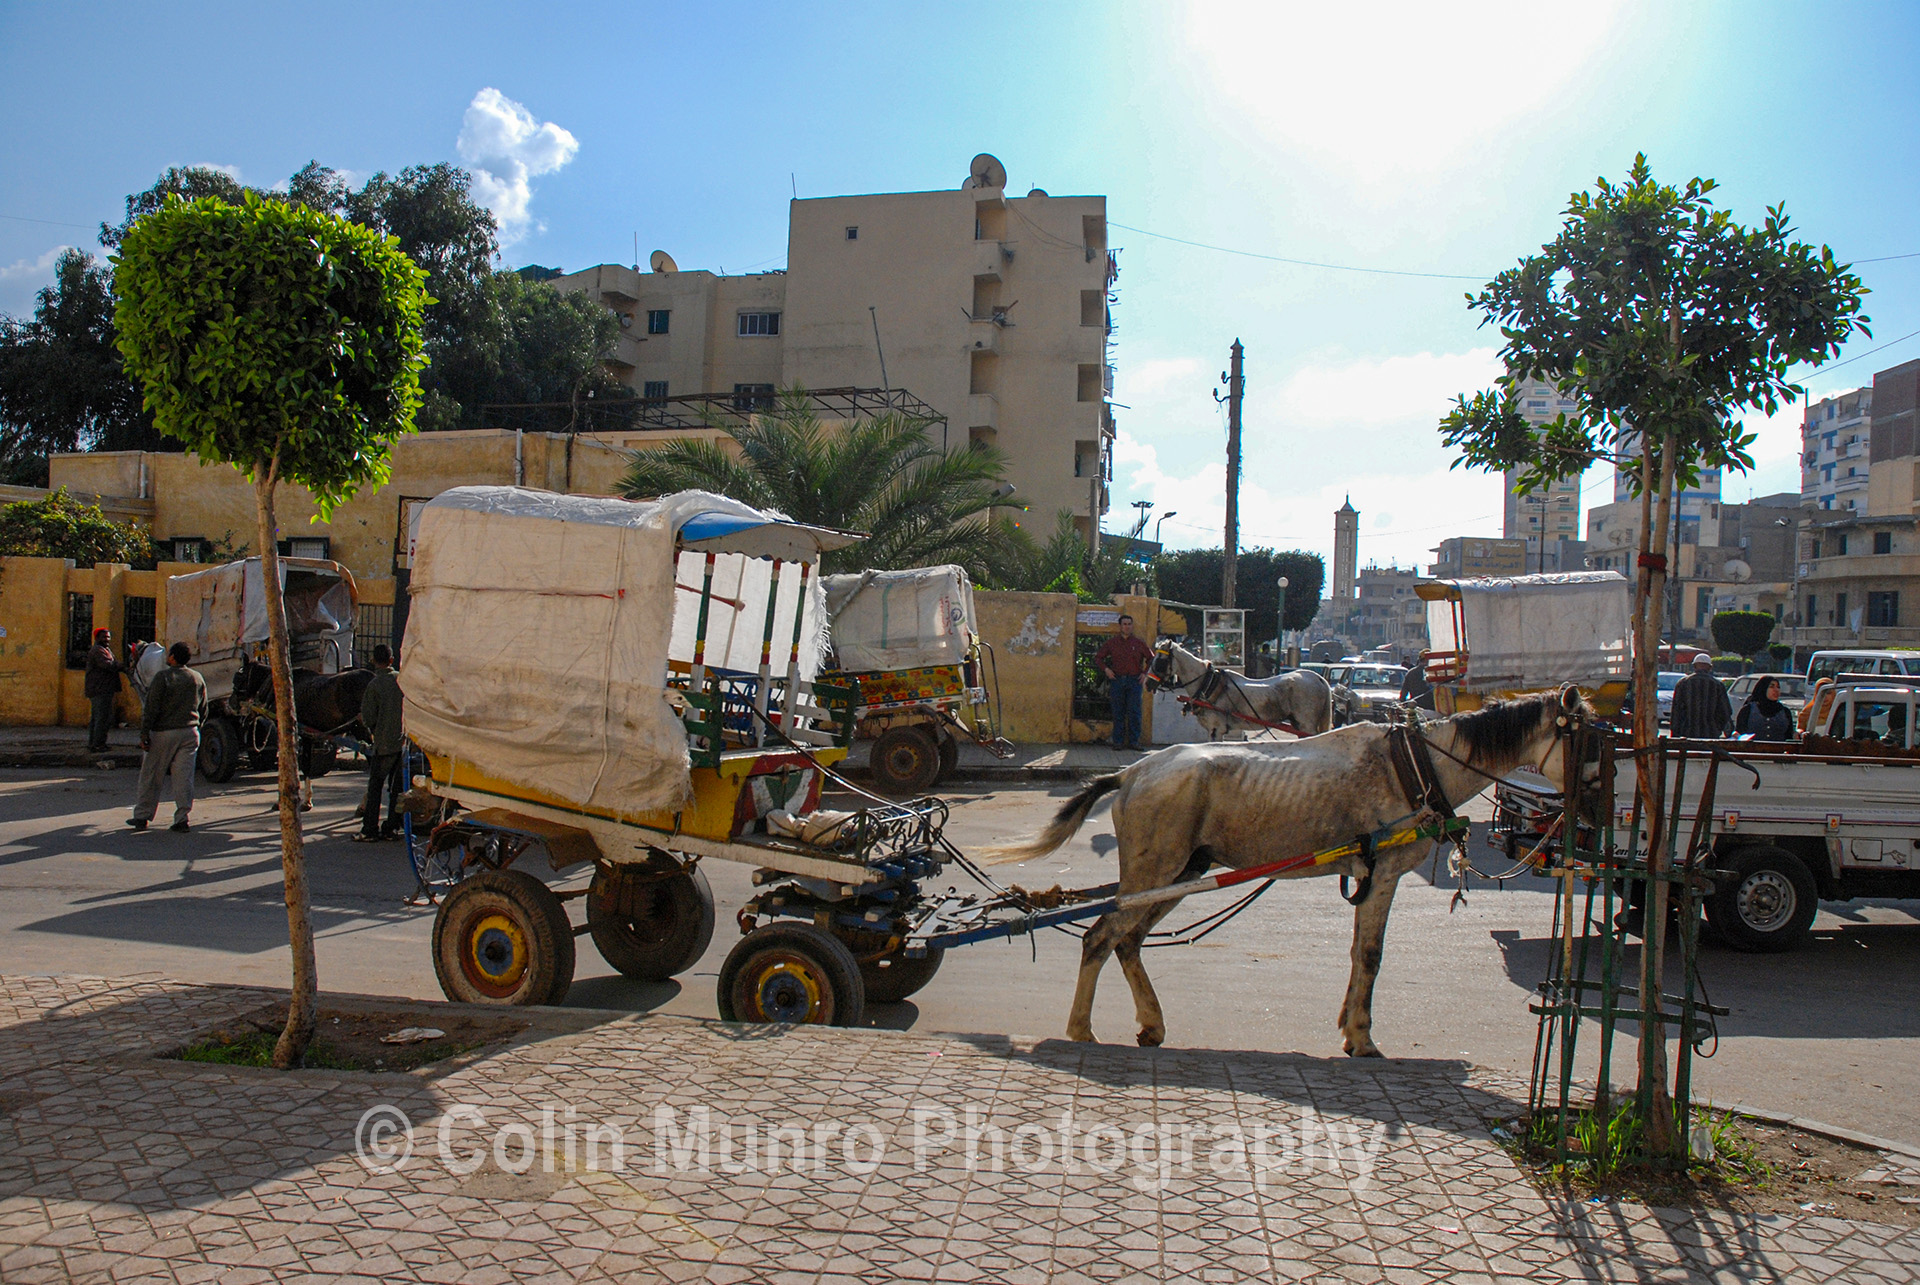 Horse drawn carriages, Abu Qir, near Alexandria, Egypt. www.colinmunrophotography.com